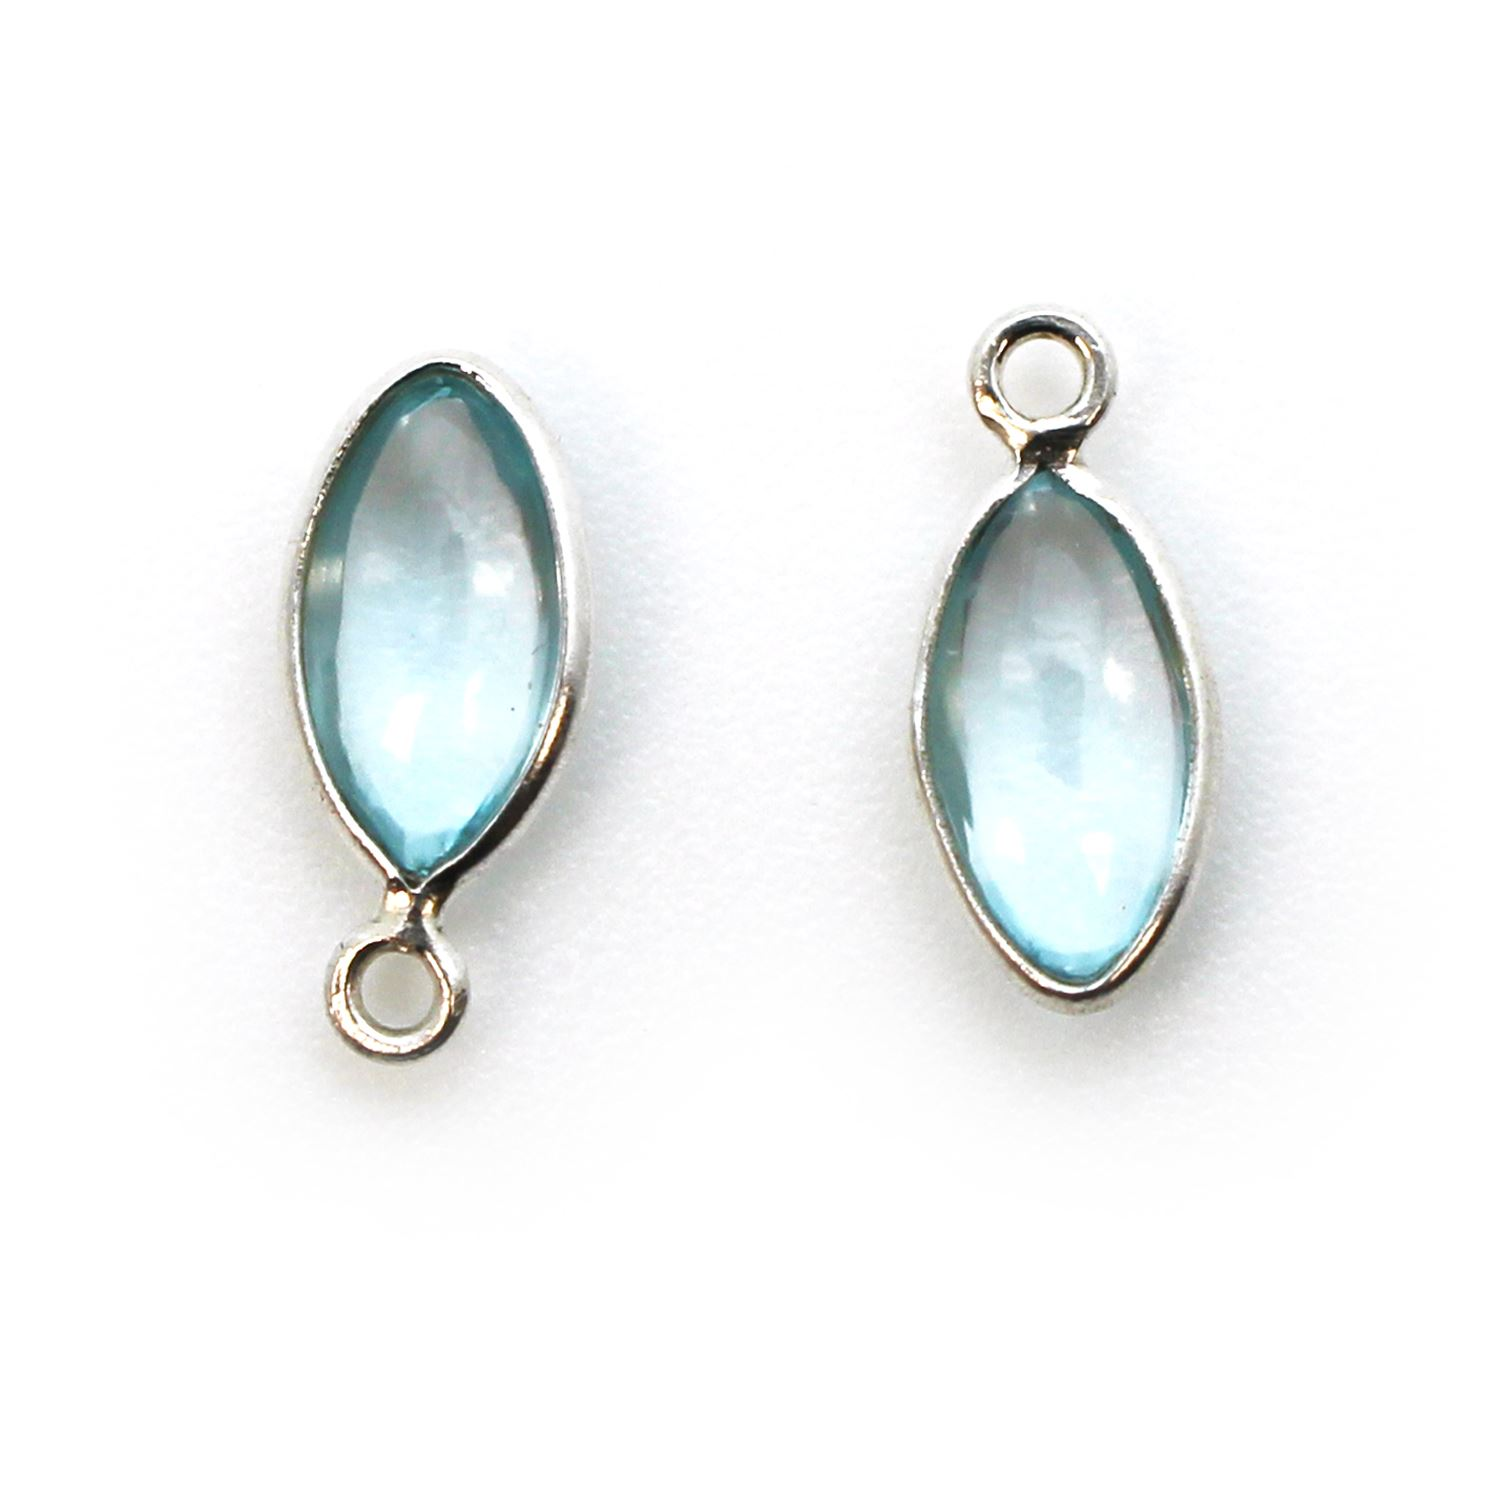 Bezel Charm Pendant - Sterling Silver Charm - Natural Sky Blue Topaz - Tiny Marquise Shape -6x13mm